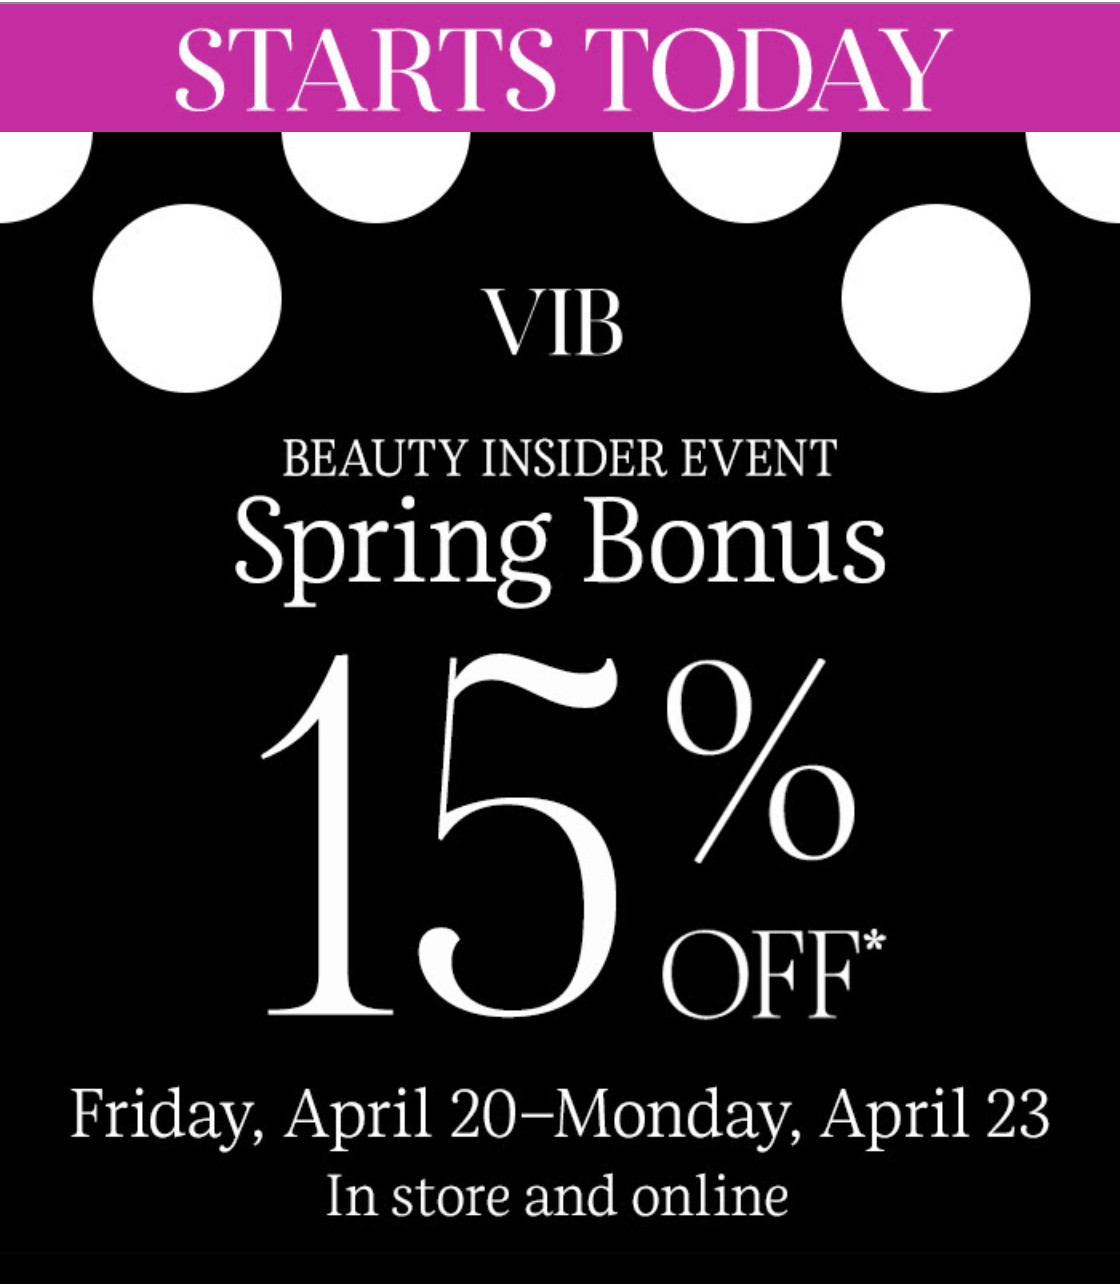 ENDS TONIGHT! Sephora Spring Bonus Sale: 15% Off Site for VIBs!